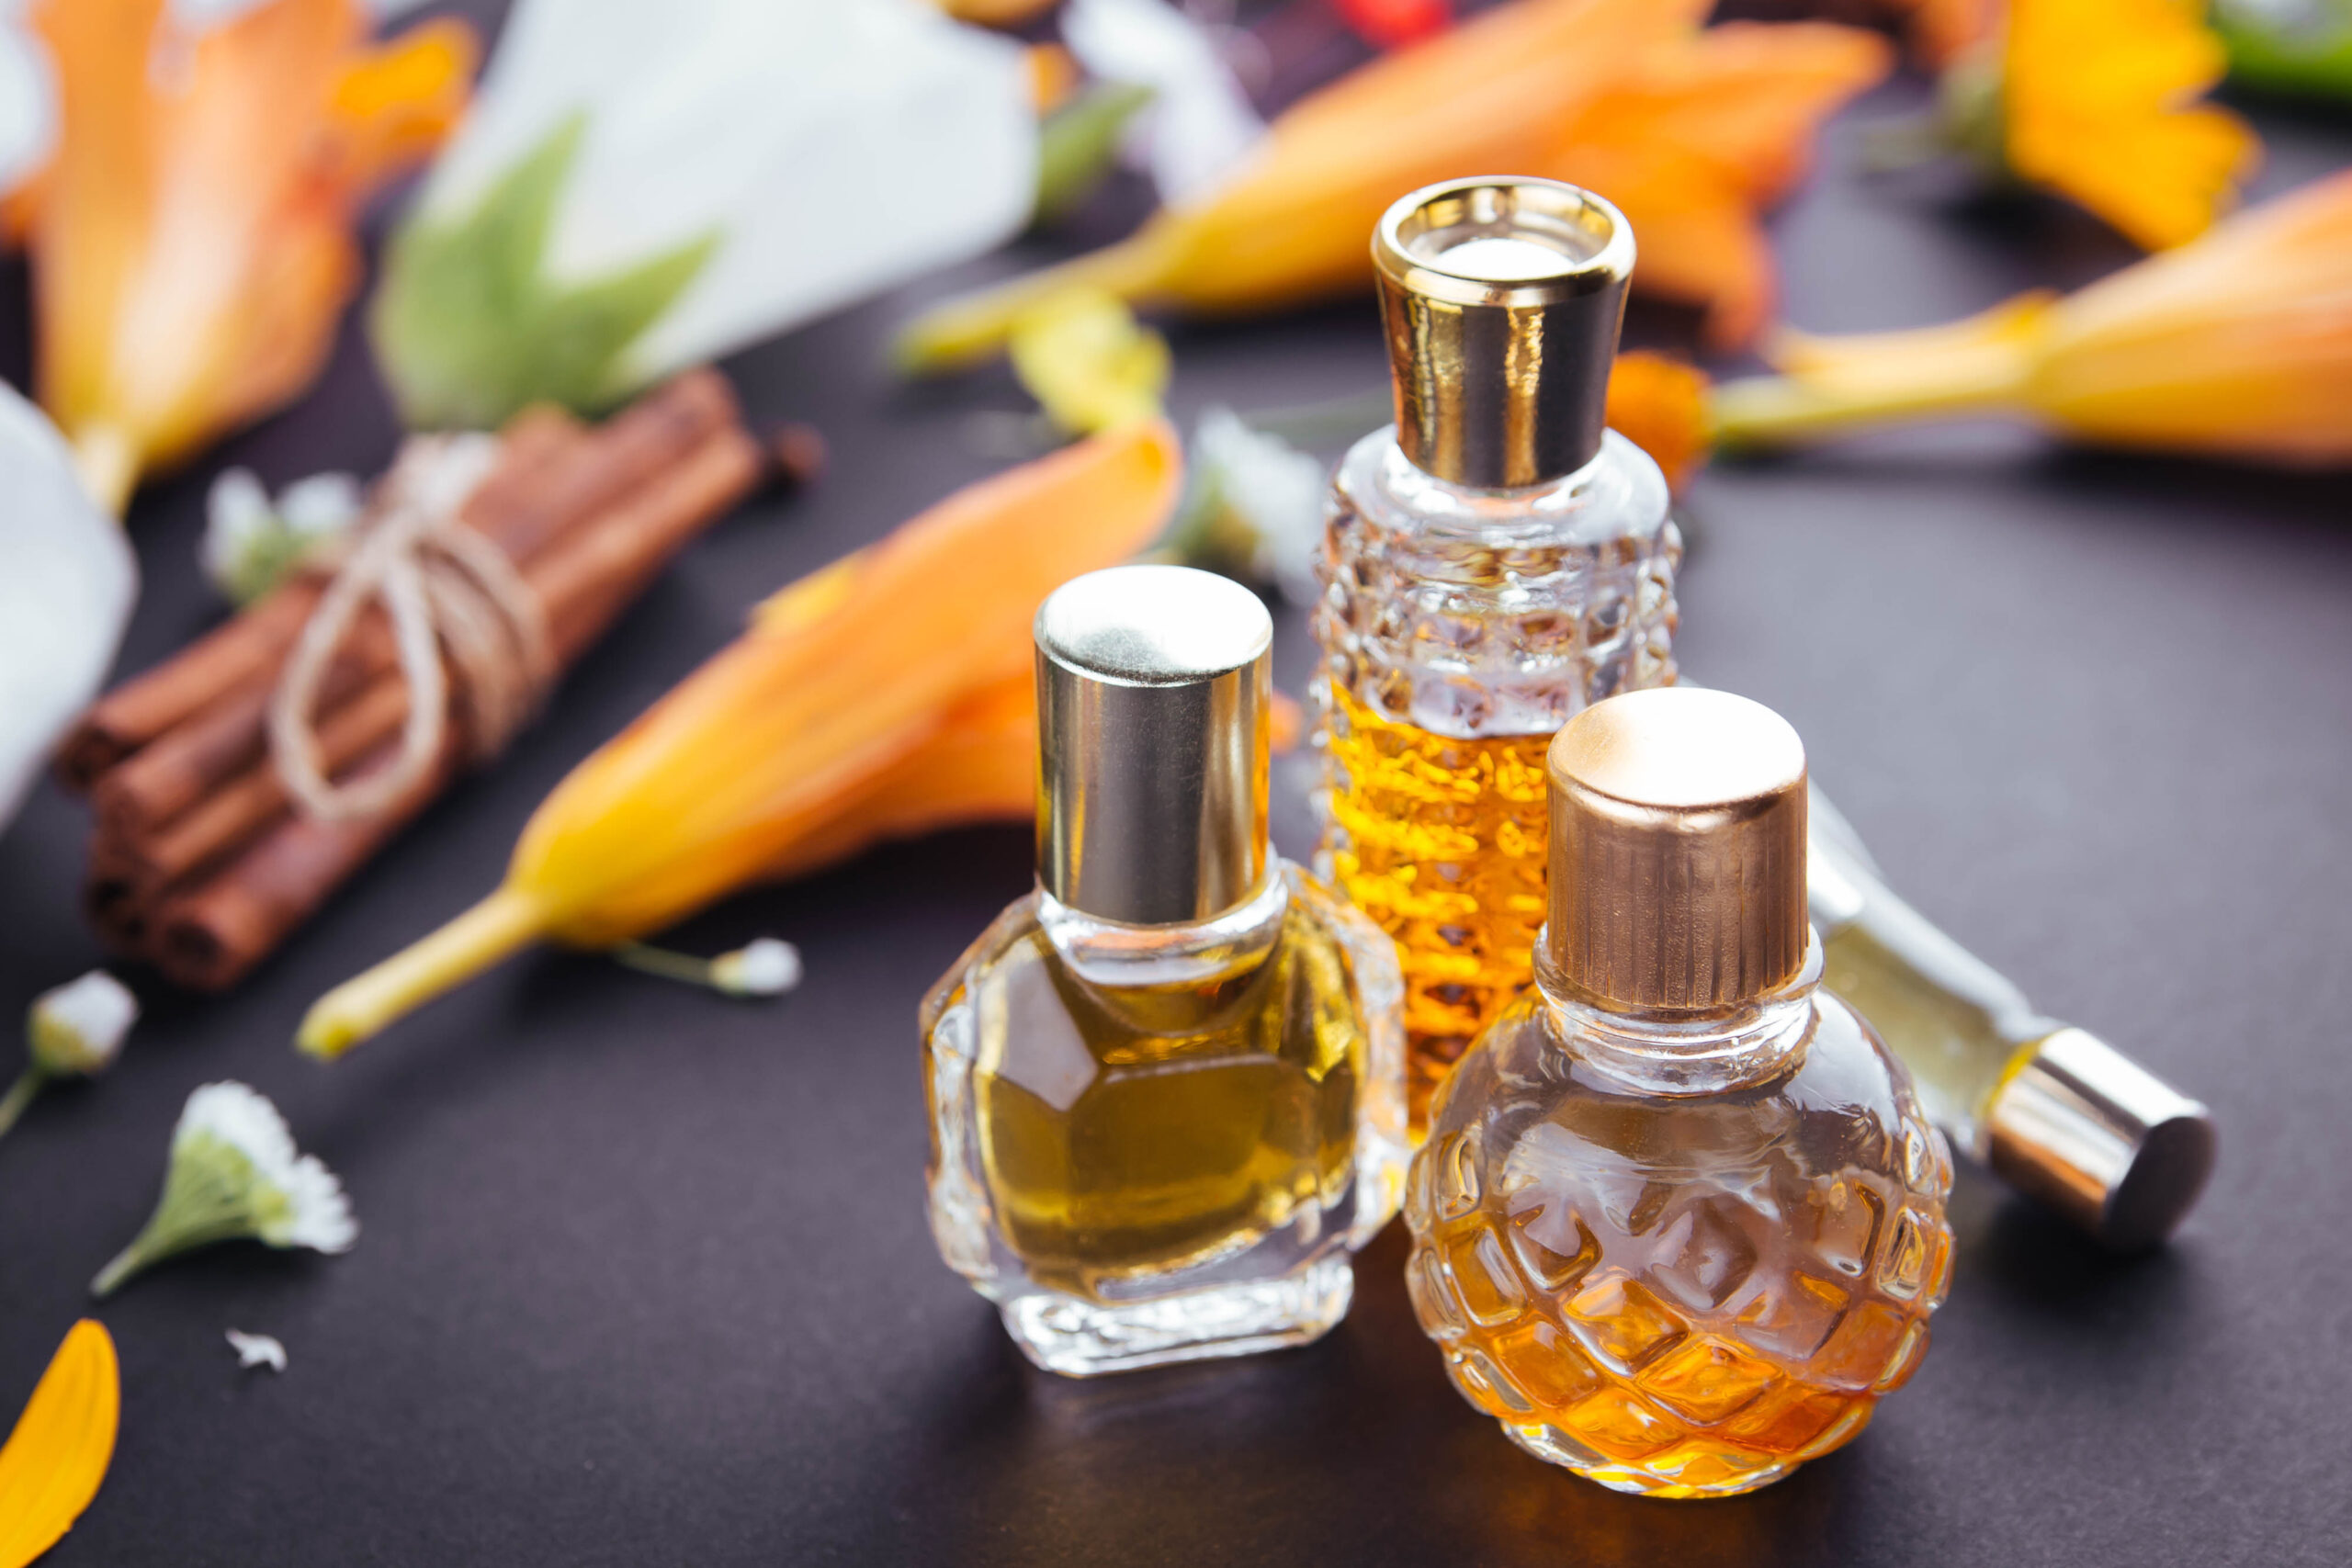 Bottles of perfume with ingredients